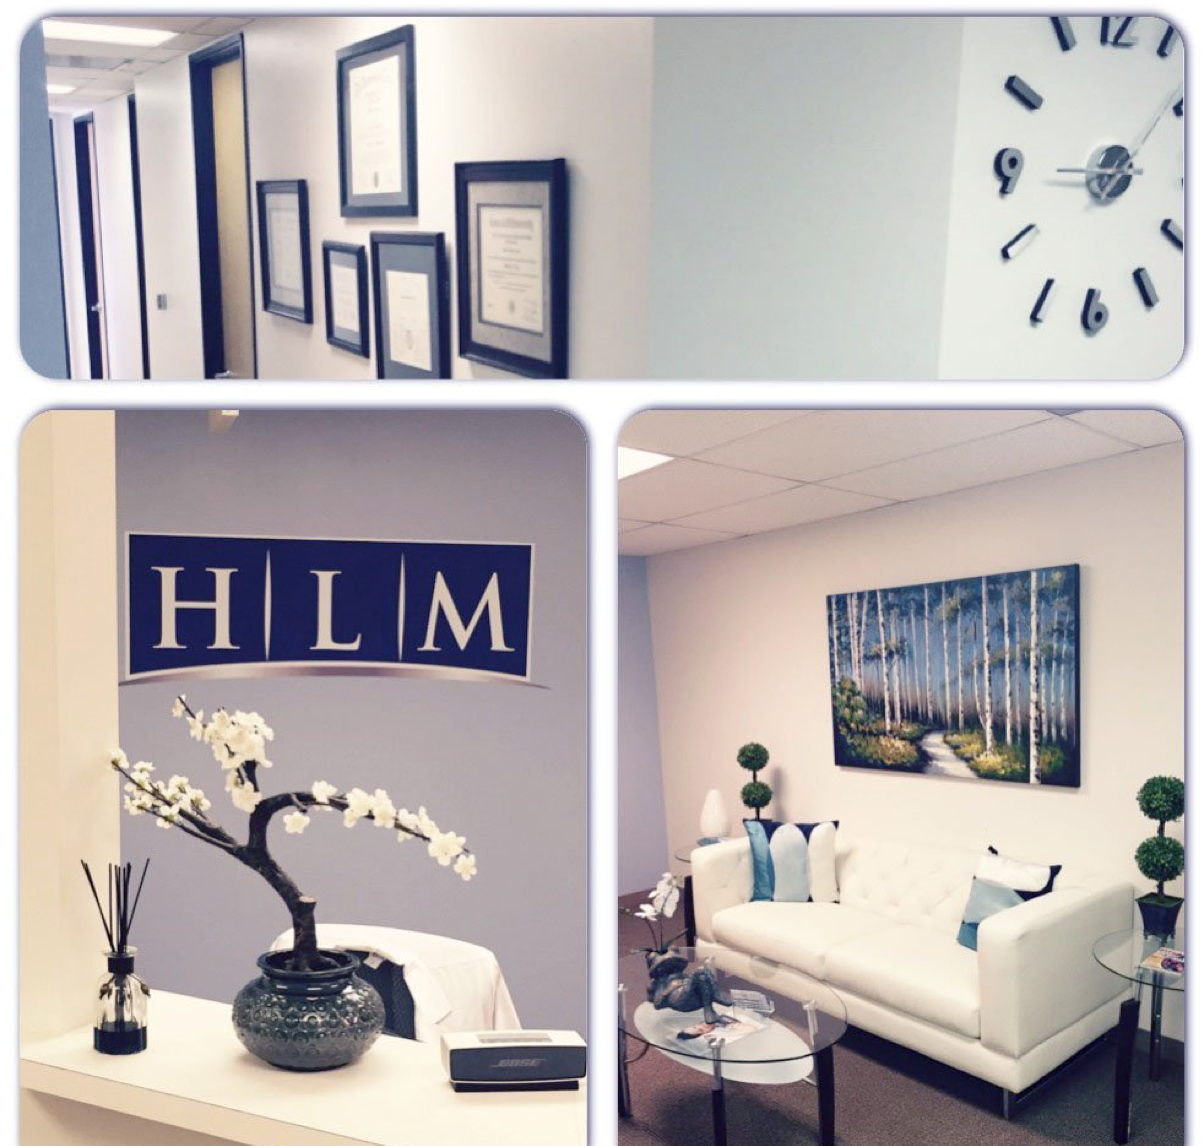 HLM Medical Office Pasadena CA